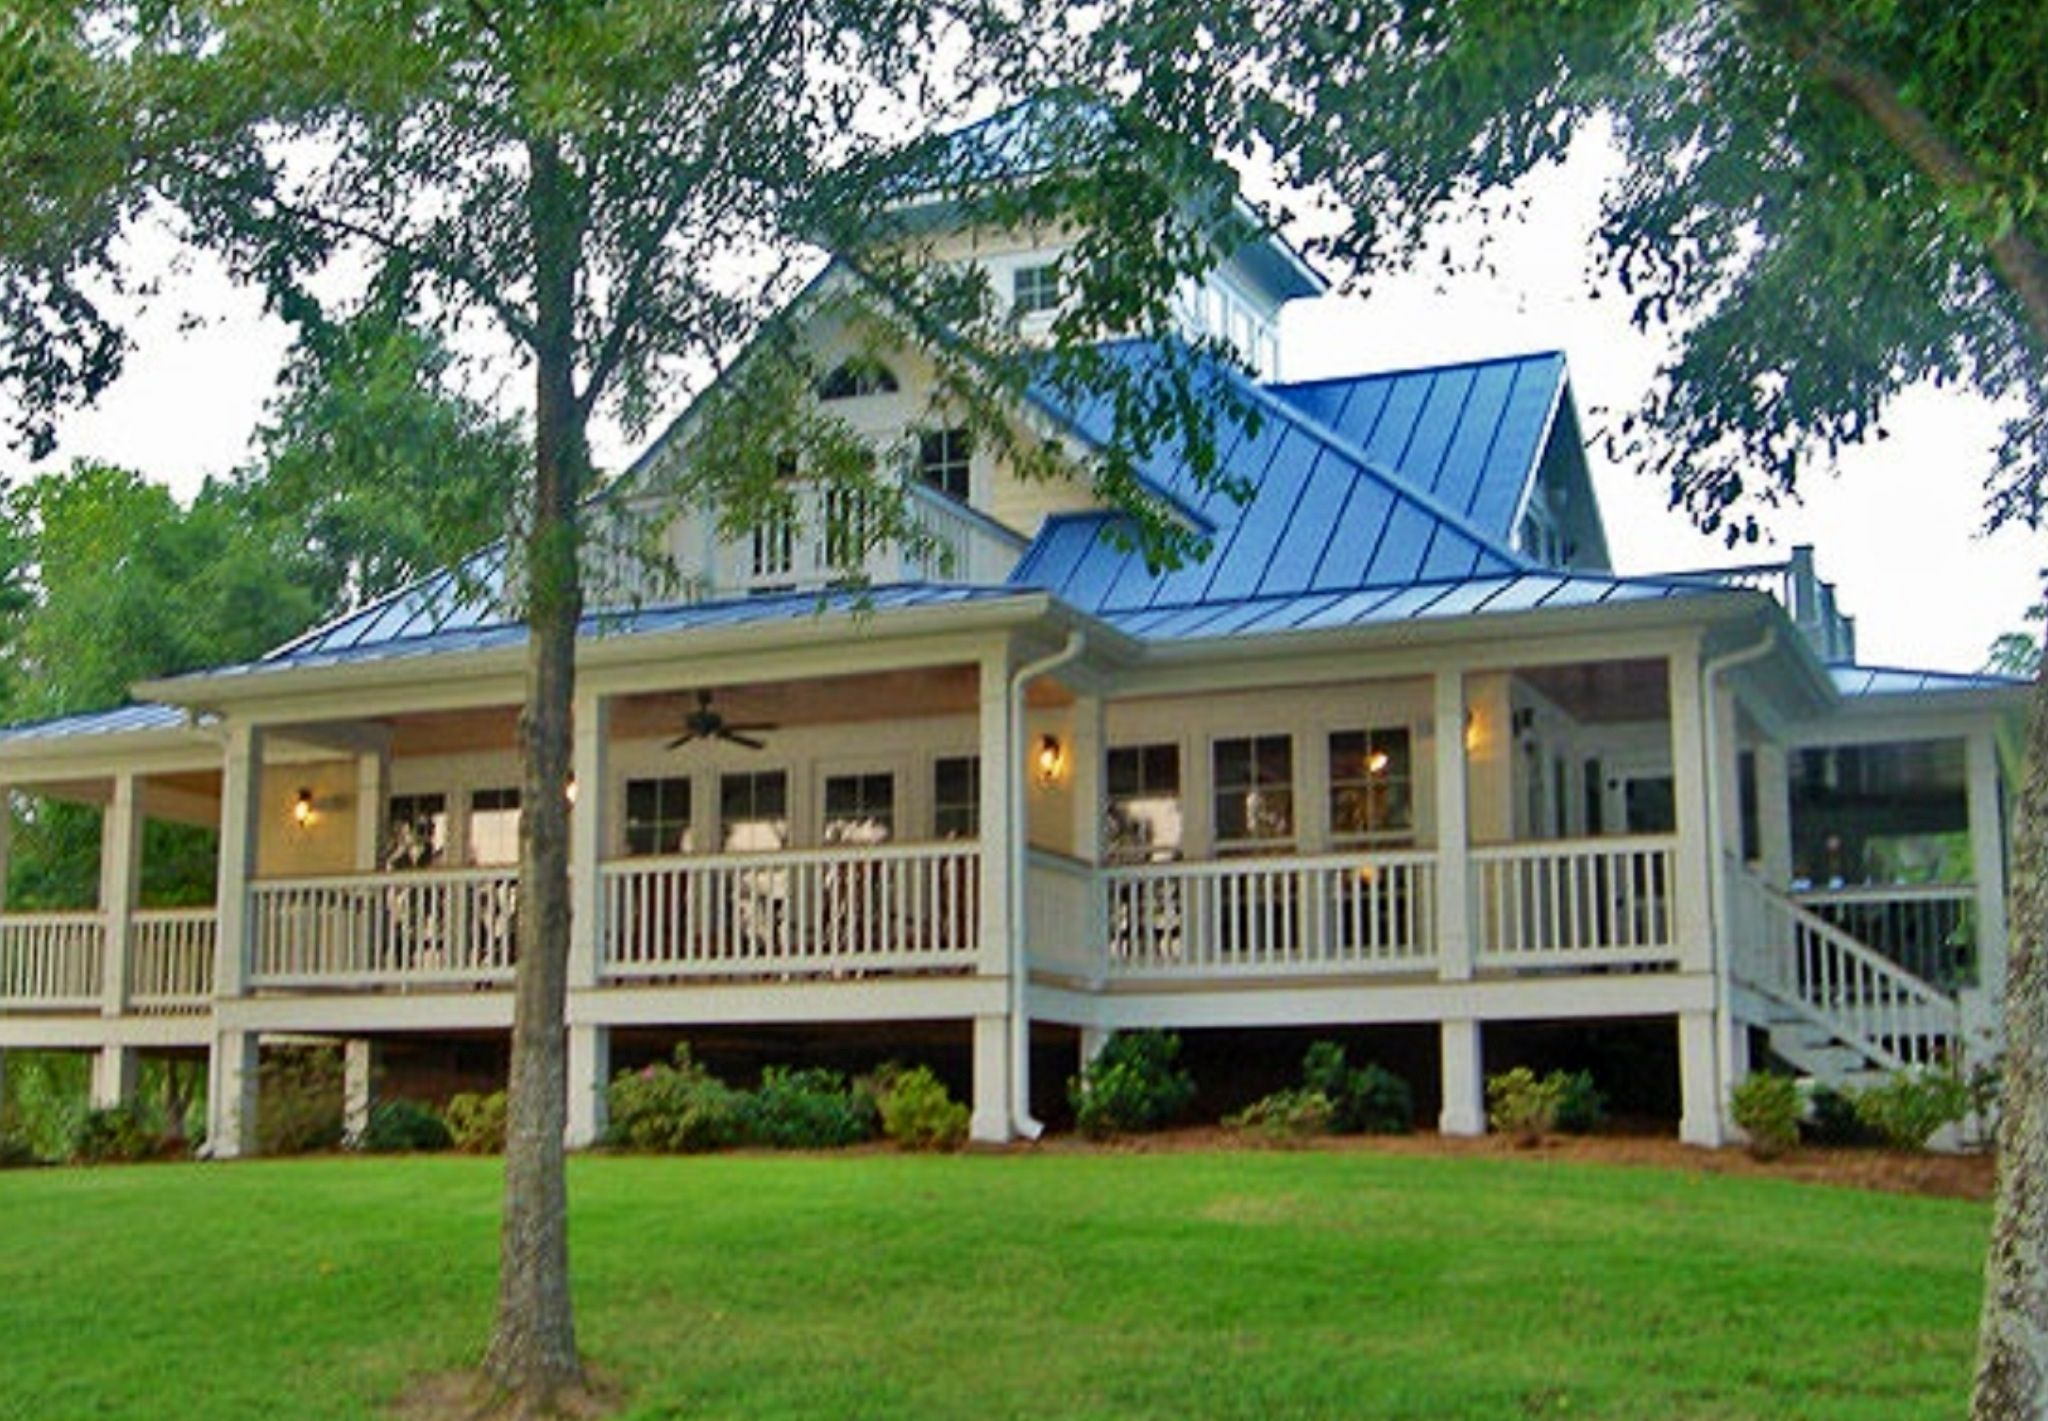 I Just Want A Simple Beautiful Home And A Simple Life With My Family Cottage House Plans Cottage Plan Beach House Plans